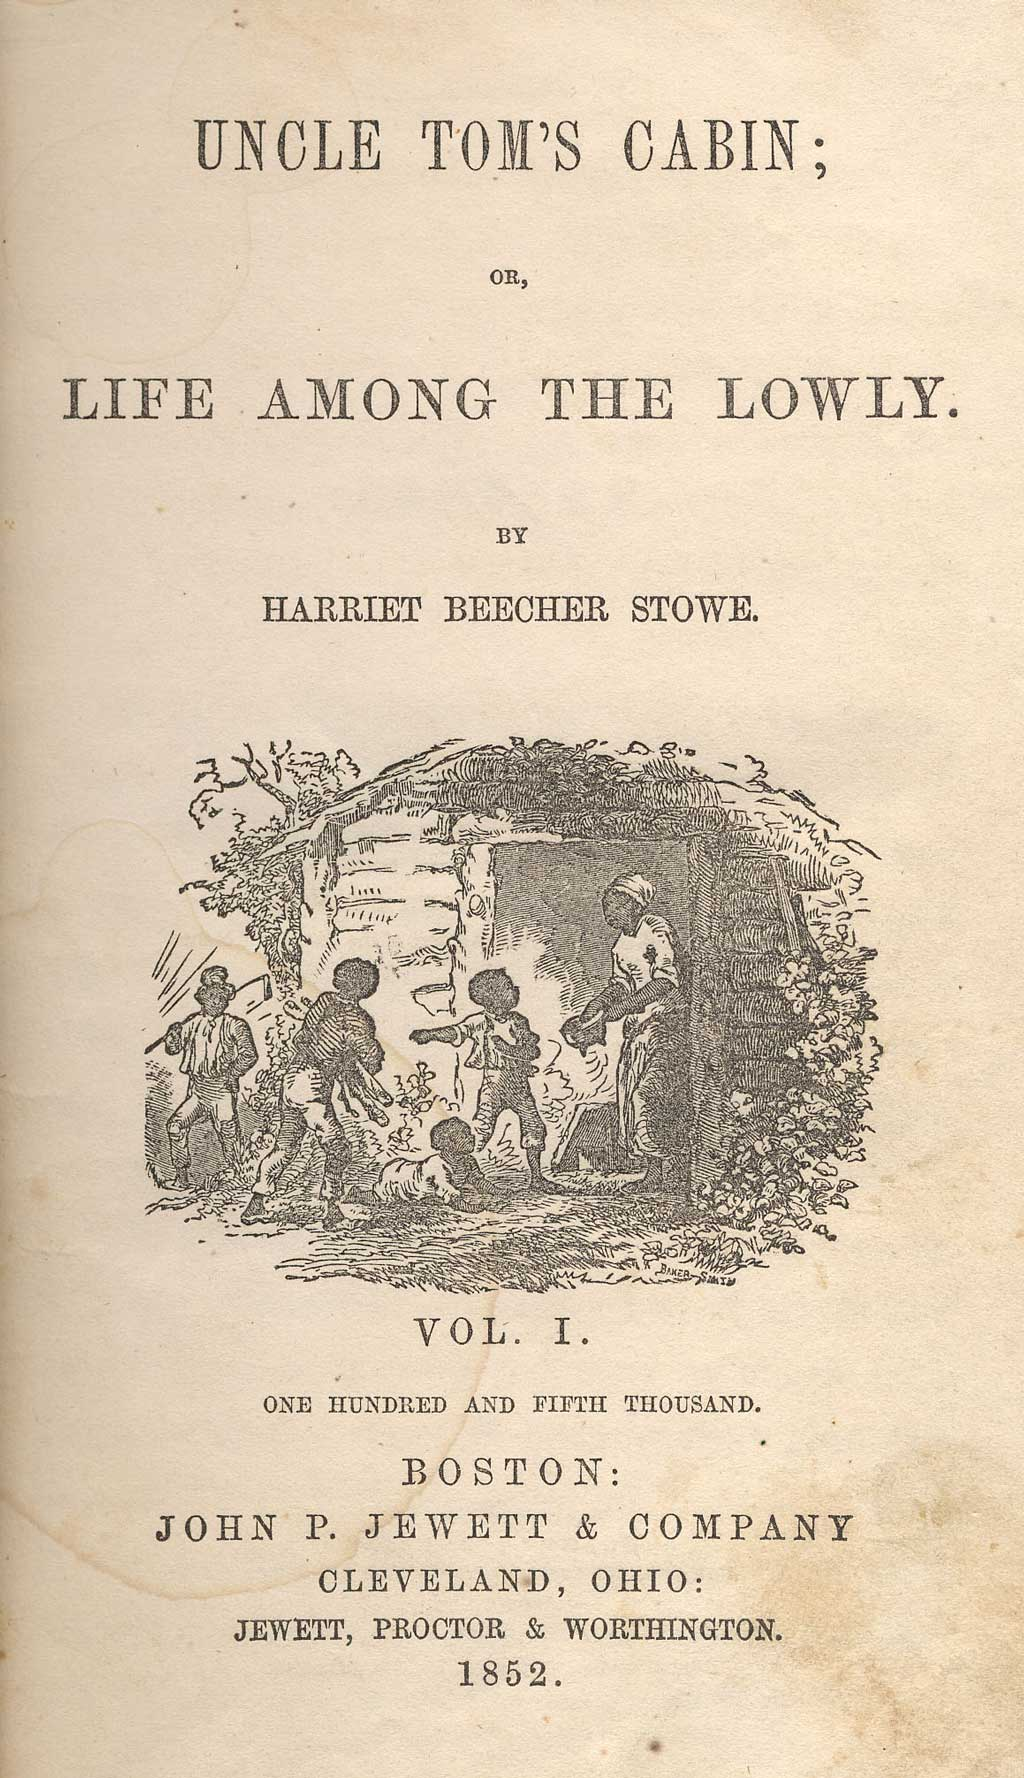 Cover of the book Uncle Tom's Cabin. Shows characters of Chloe, Mose, Pete, Baby, Tom.